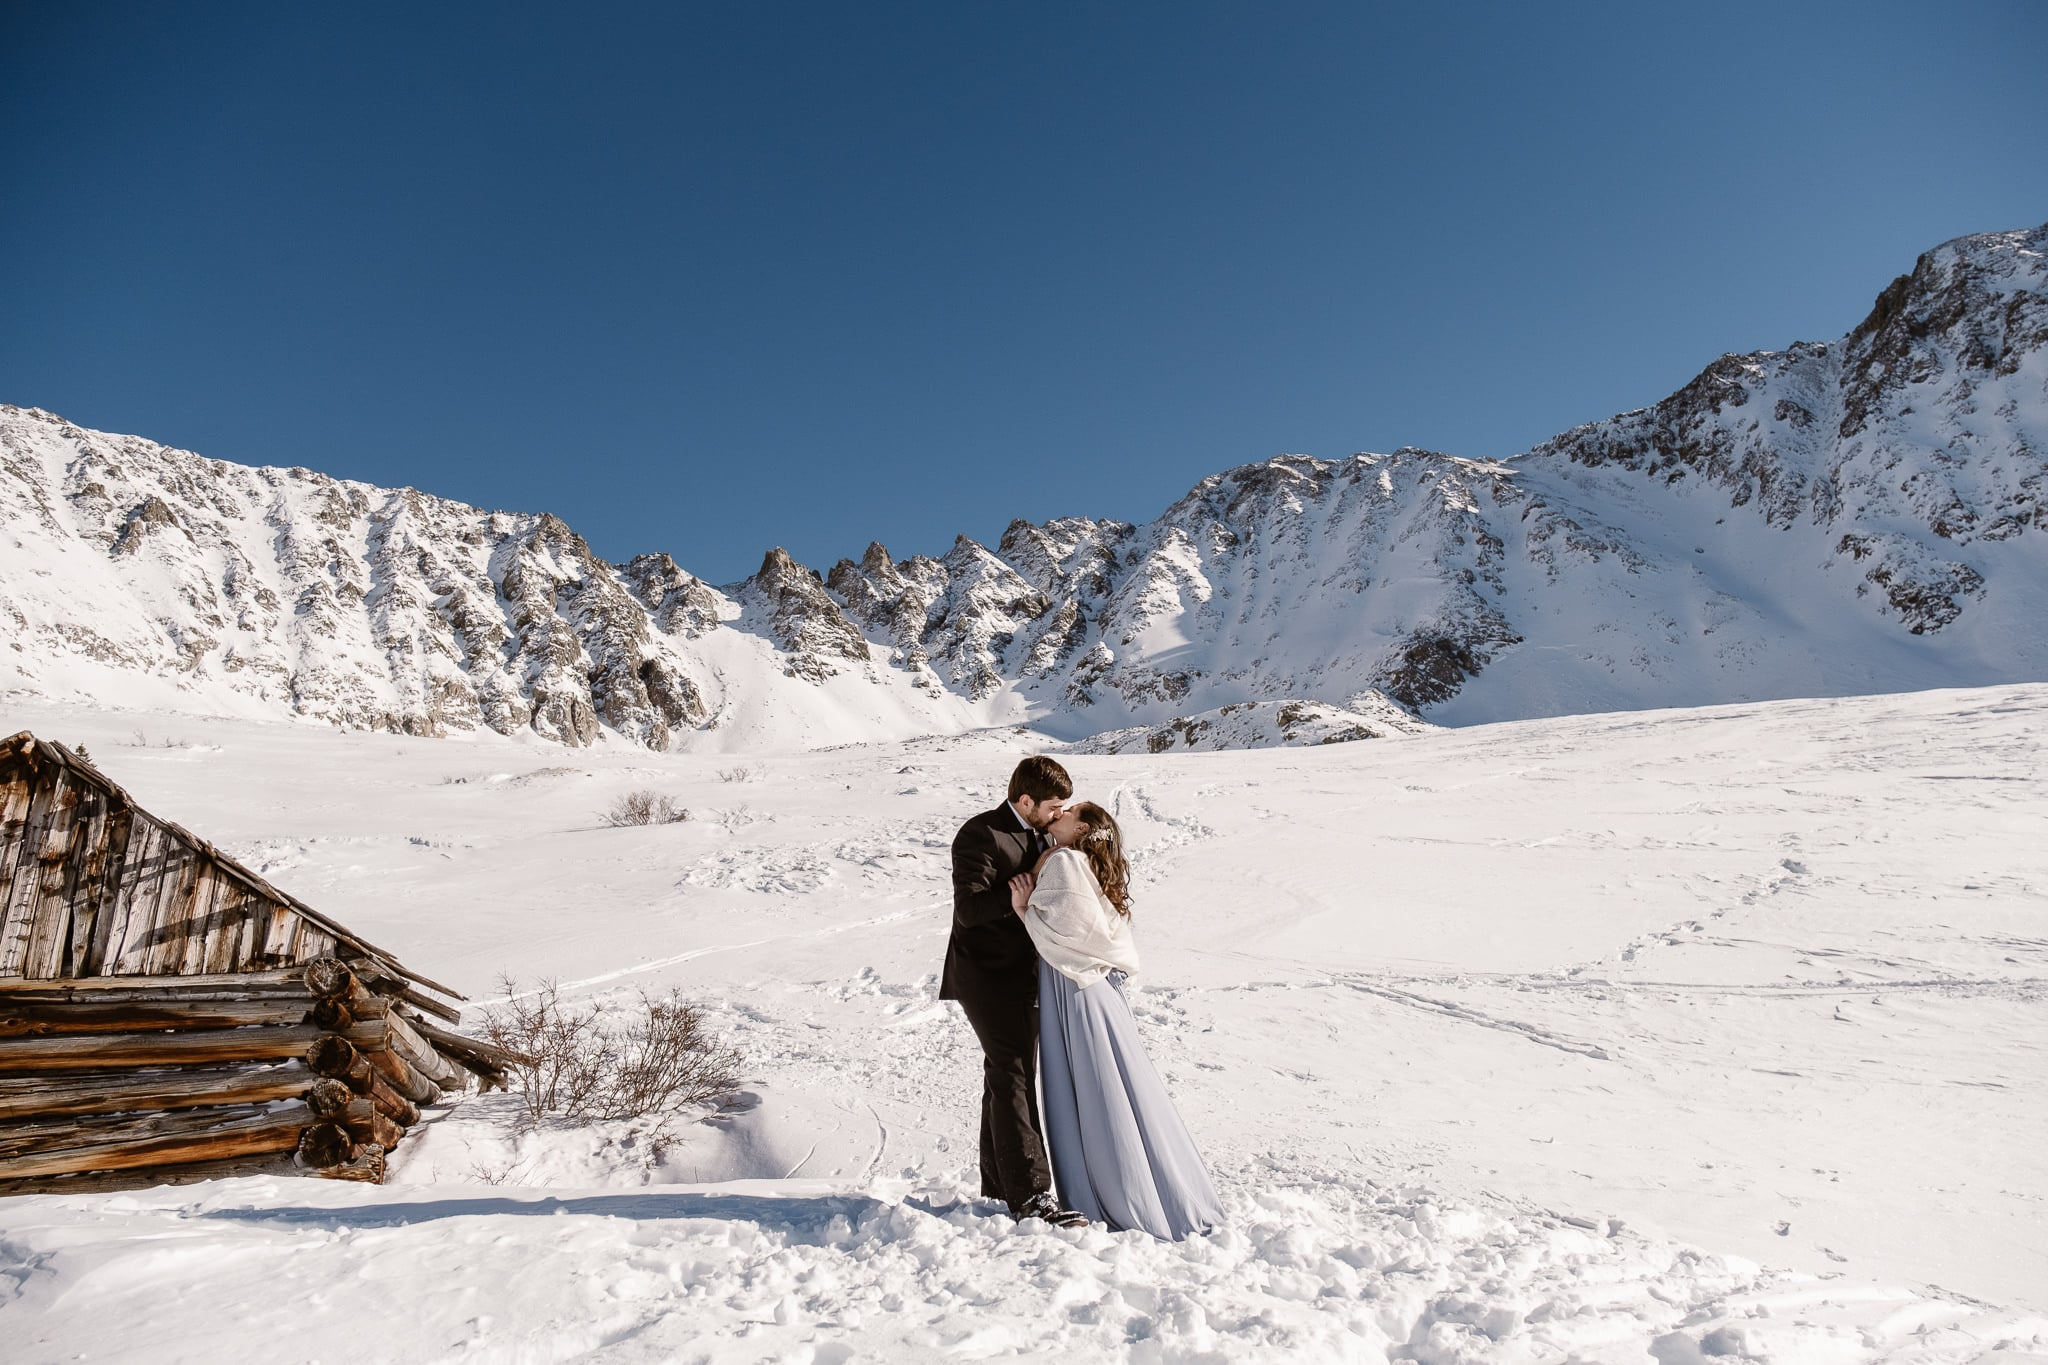 Bride and groom kissing, winter mountain elopement, Colorado ski wedding, backcountry skiing elopement